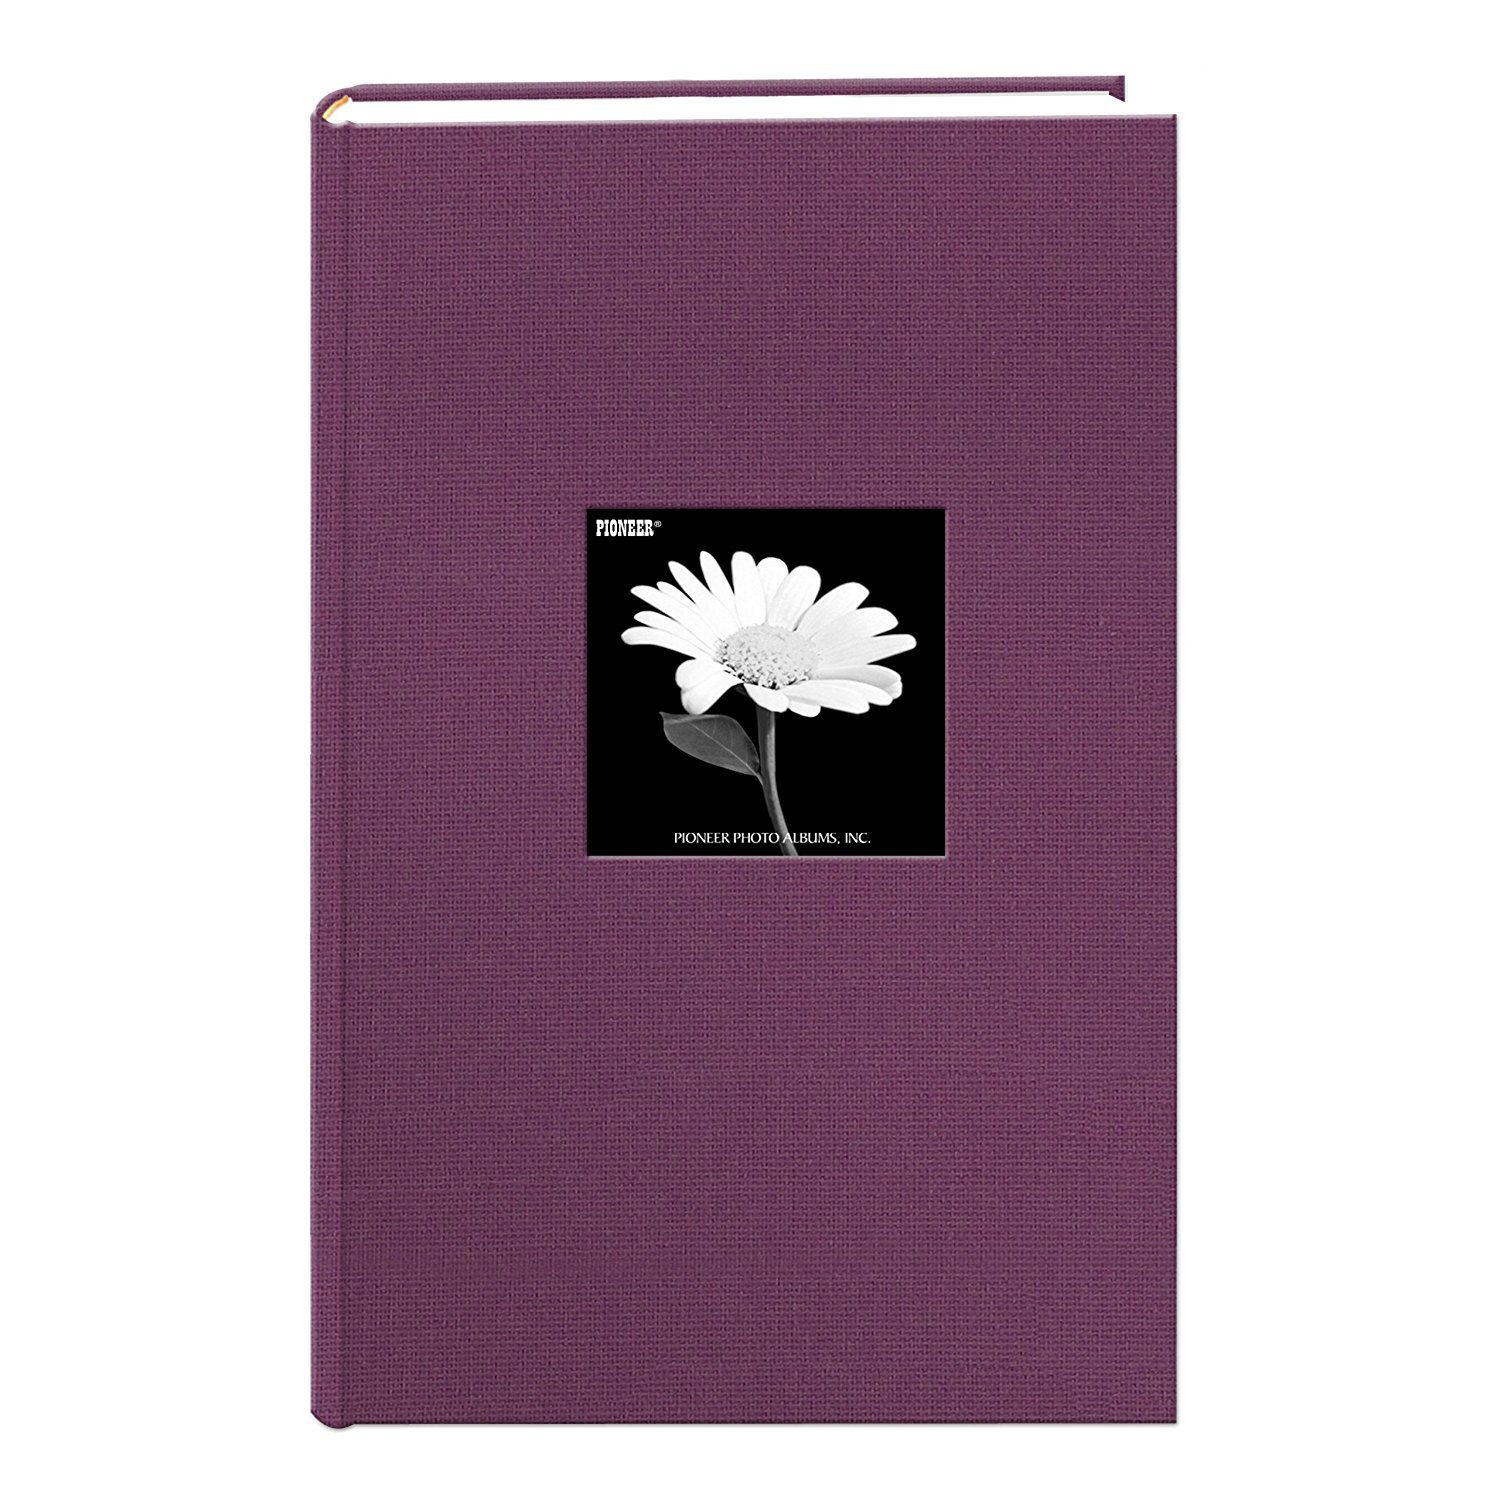 Pioneer Photo Albums. Fabric Frame Cover Photo Album 300 Pockets Hold 4x6 Photos, Wildberry Purple (Limited Edition) by Pioneer Photo Albums